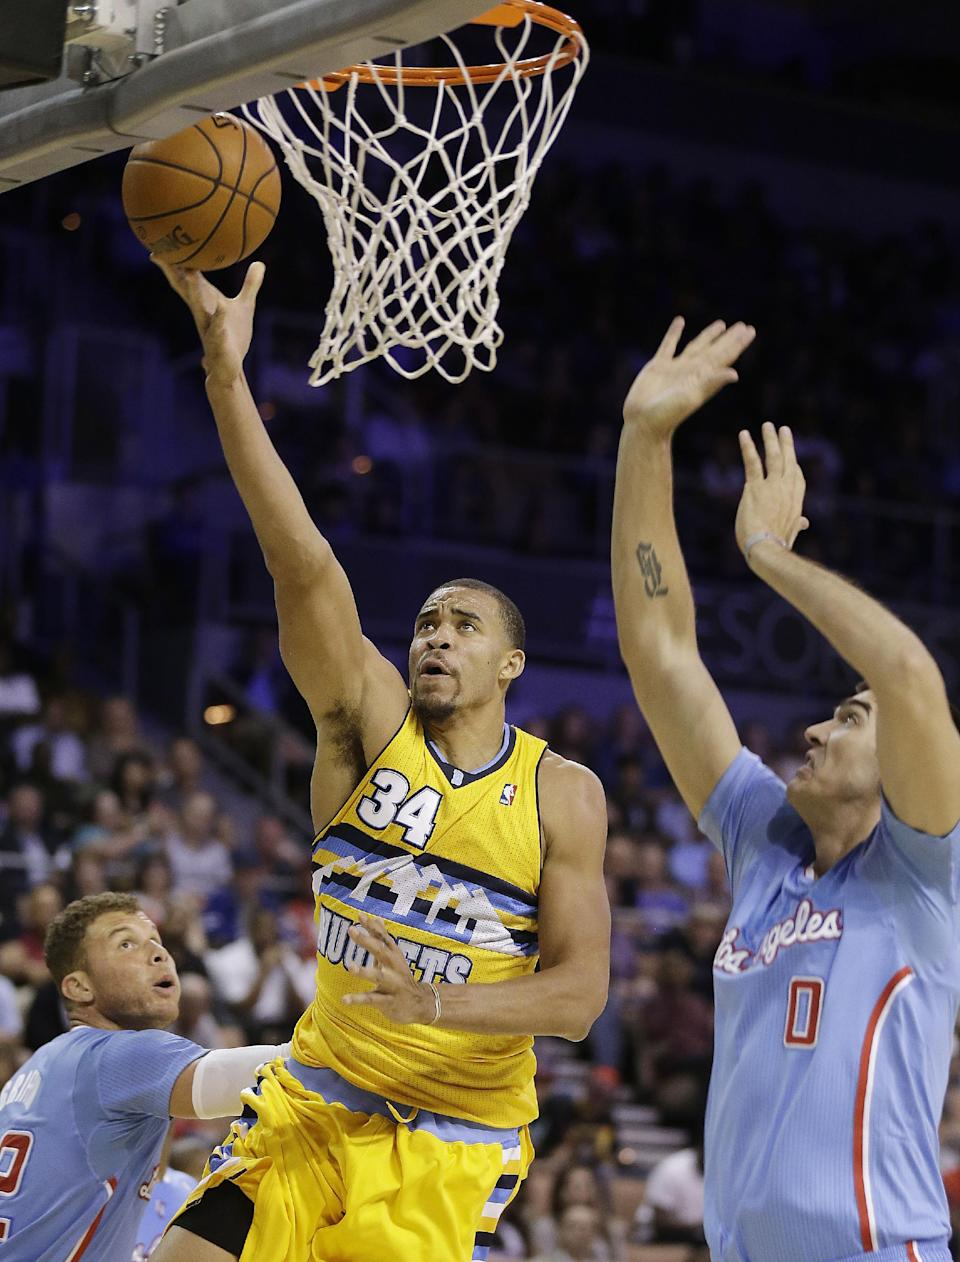 Paul scores 40, Clippers top Nuggets 118-111 in OT